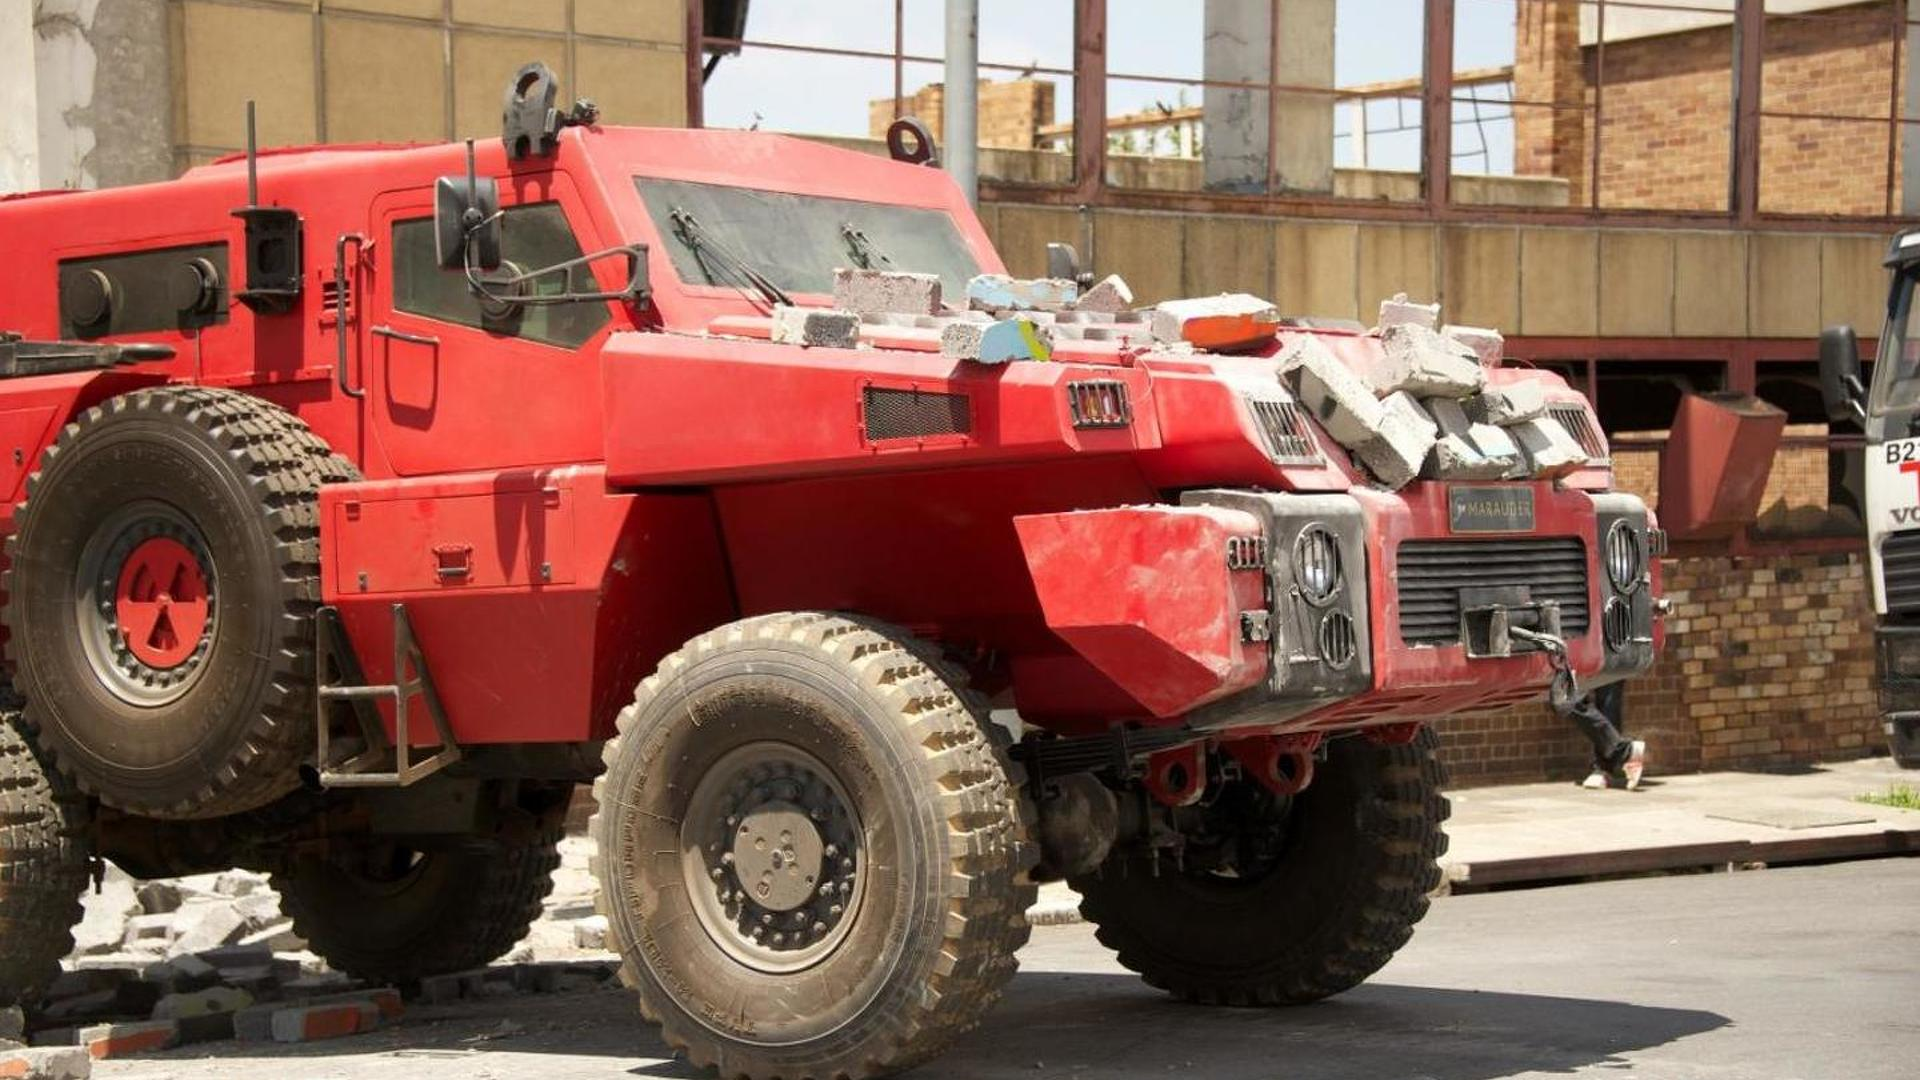 Marauder armored vehicle featured in Top Gear [video]